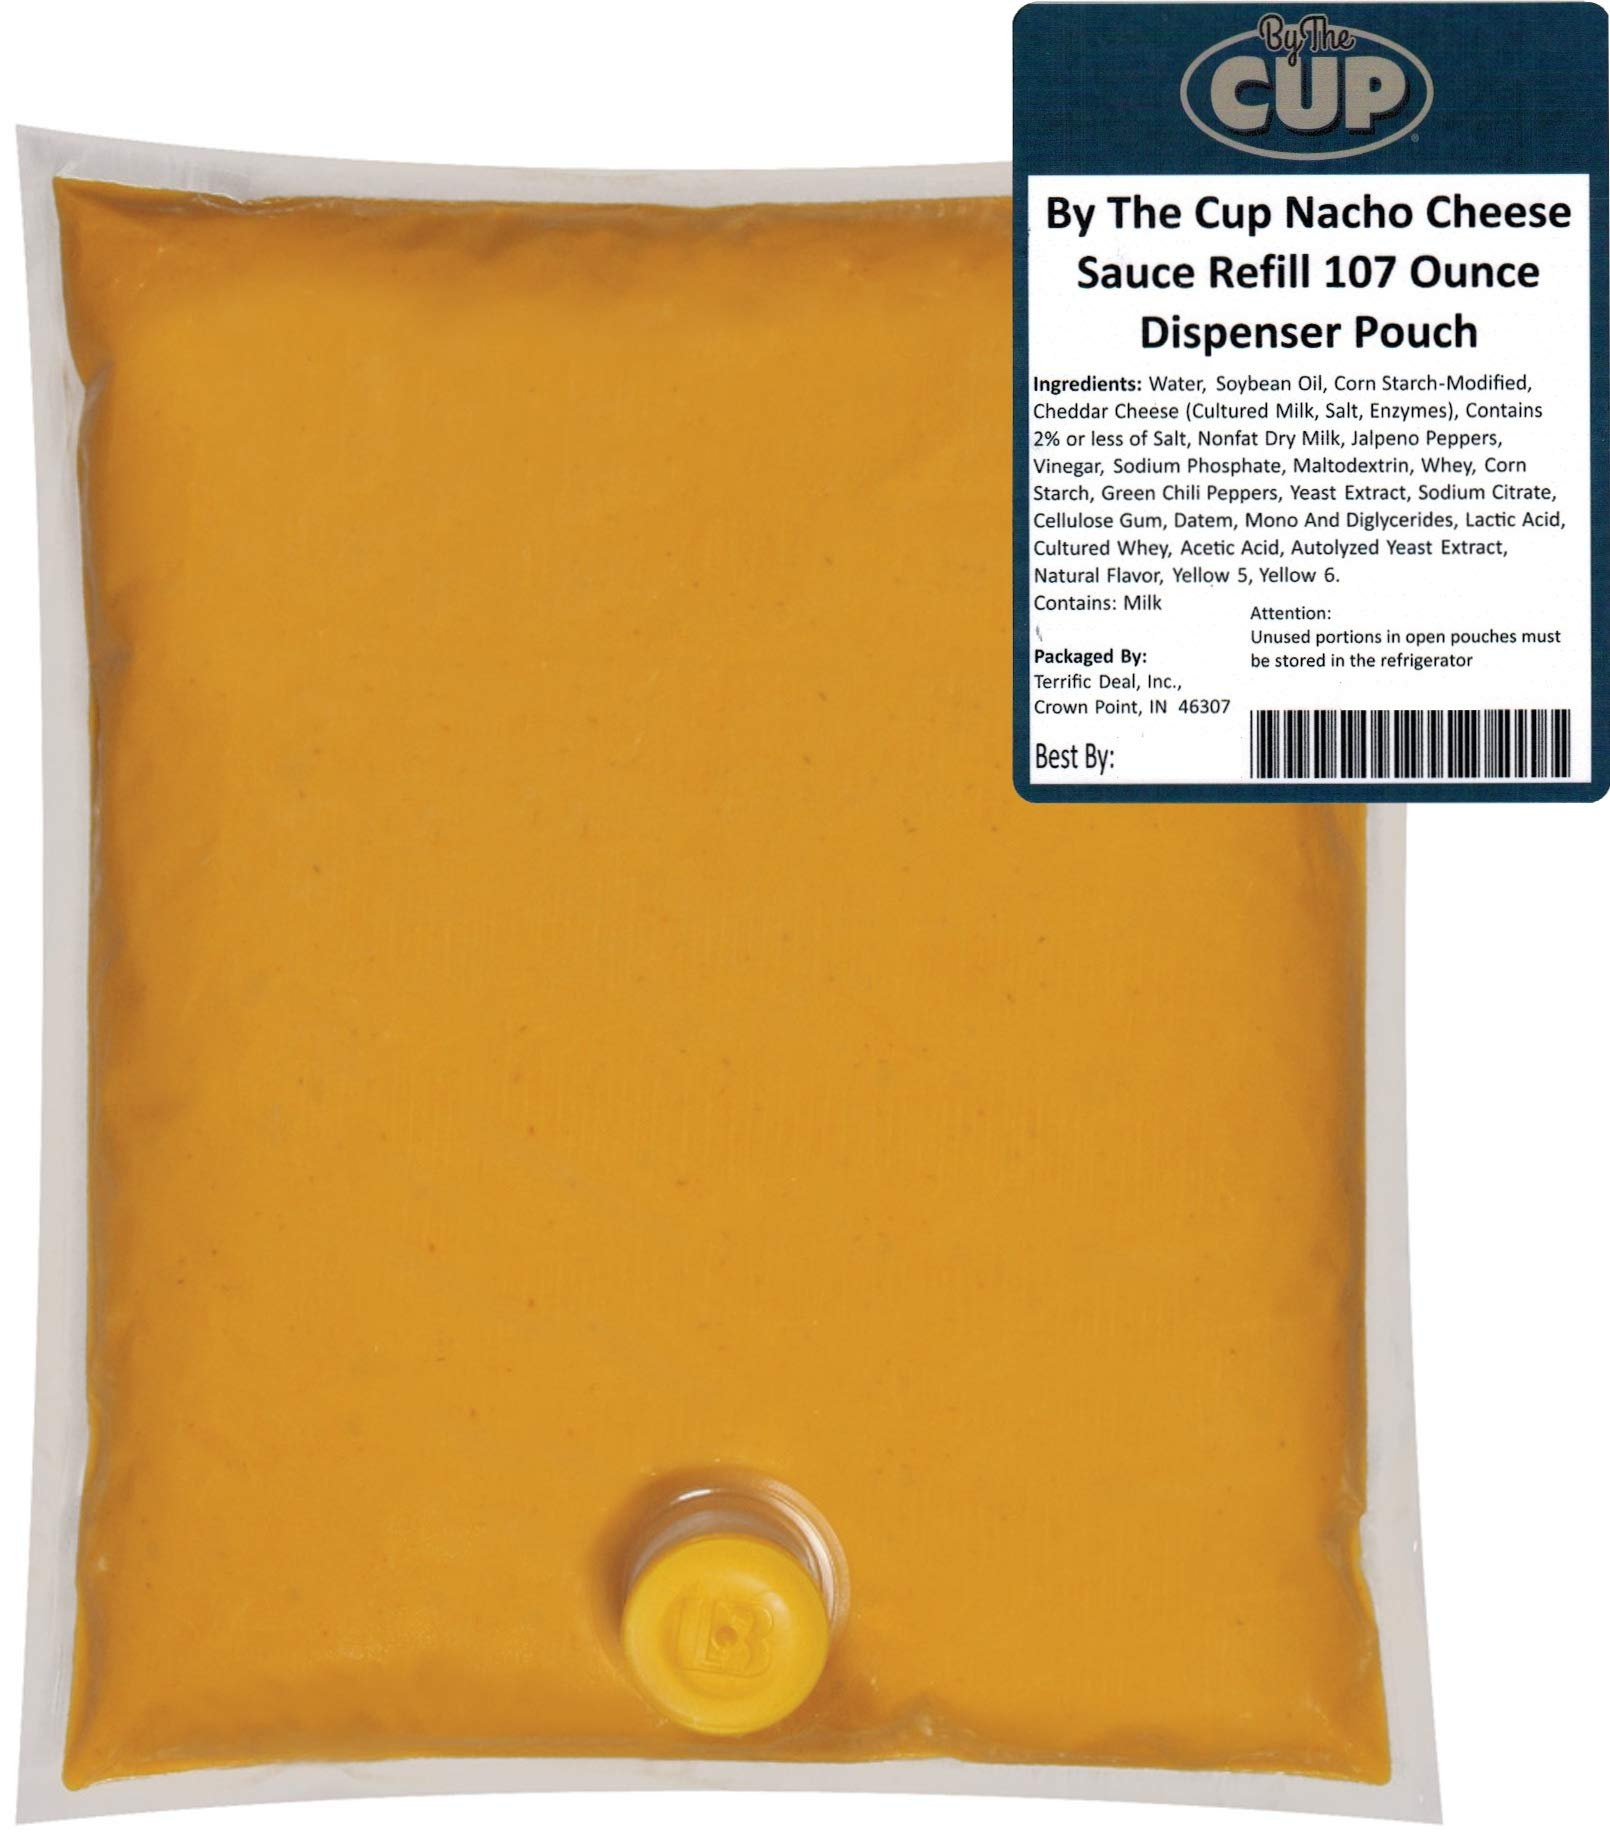 By The Cup Nacho Cheese Sauce Refill 107 Ounce Dispenser Pouch with Fitment